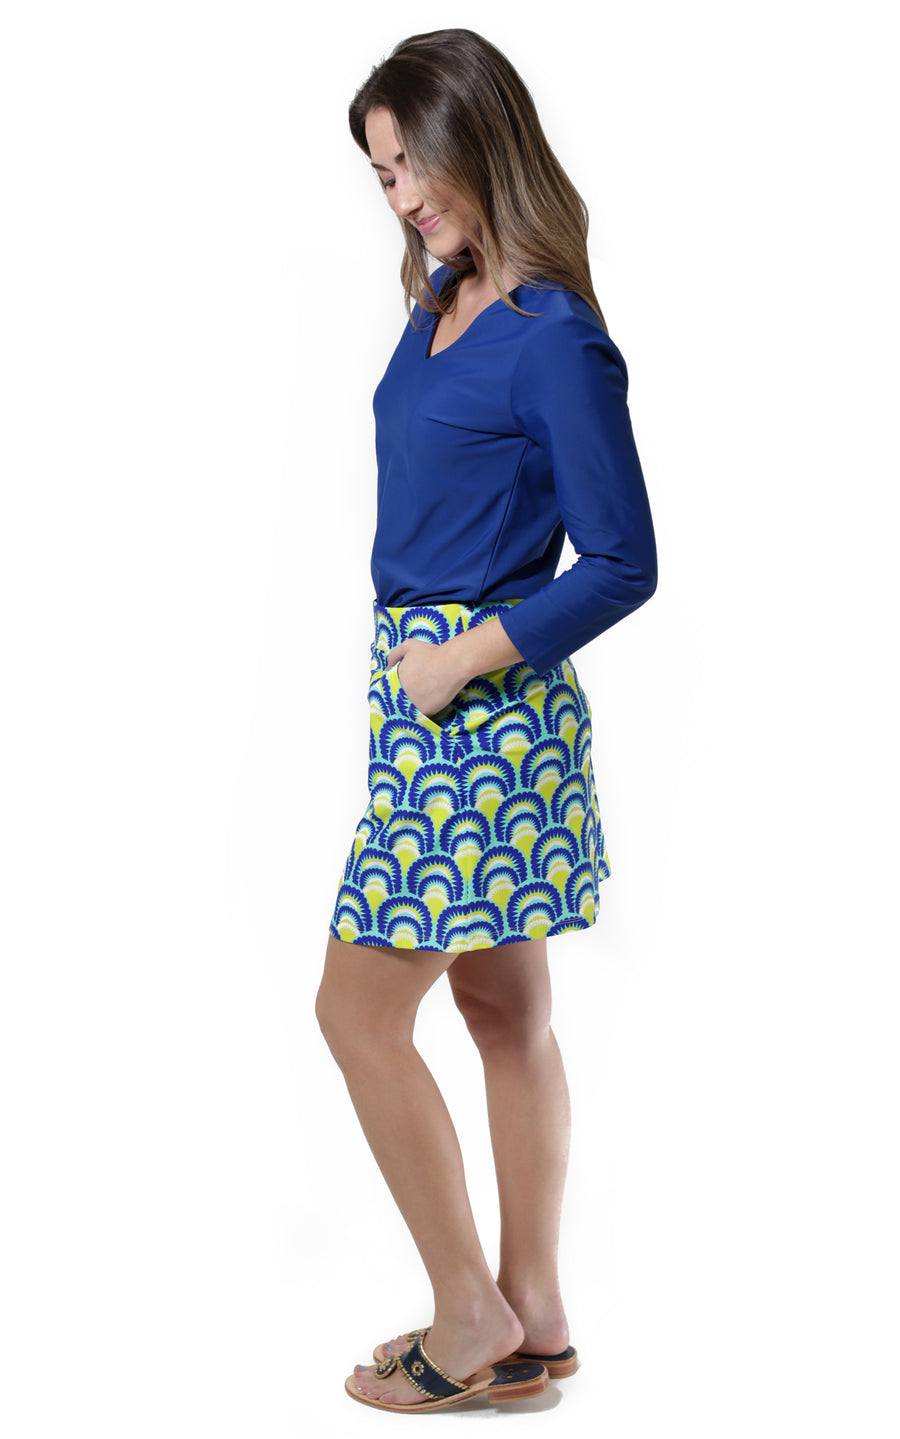 All For Color-Sea Fan Harbor Isle Skort - FINAL SALE-Bottoms